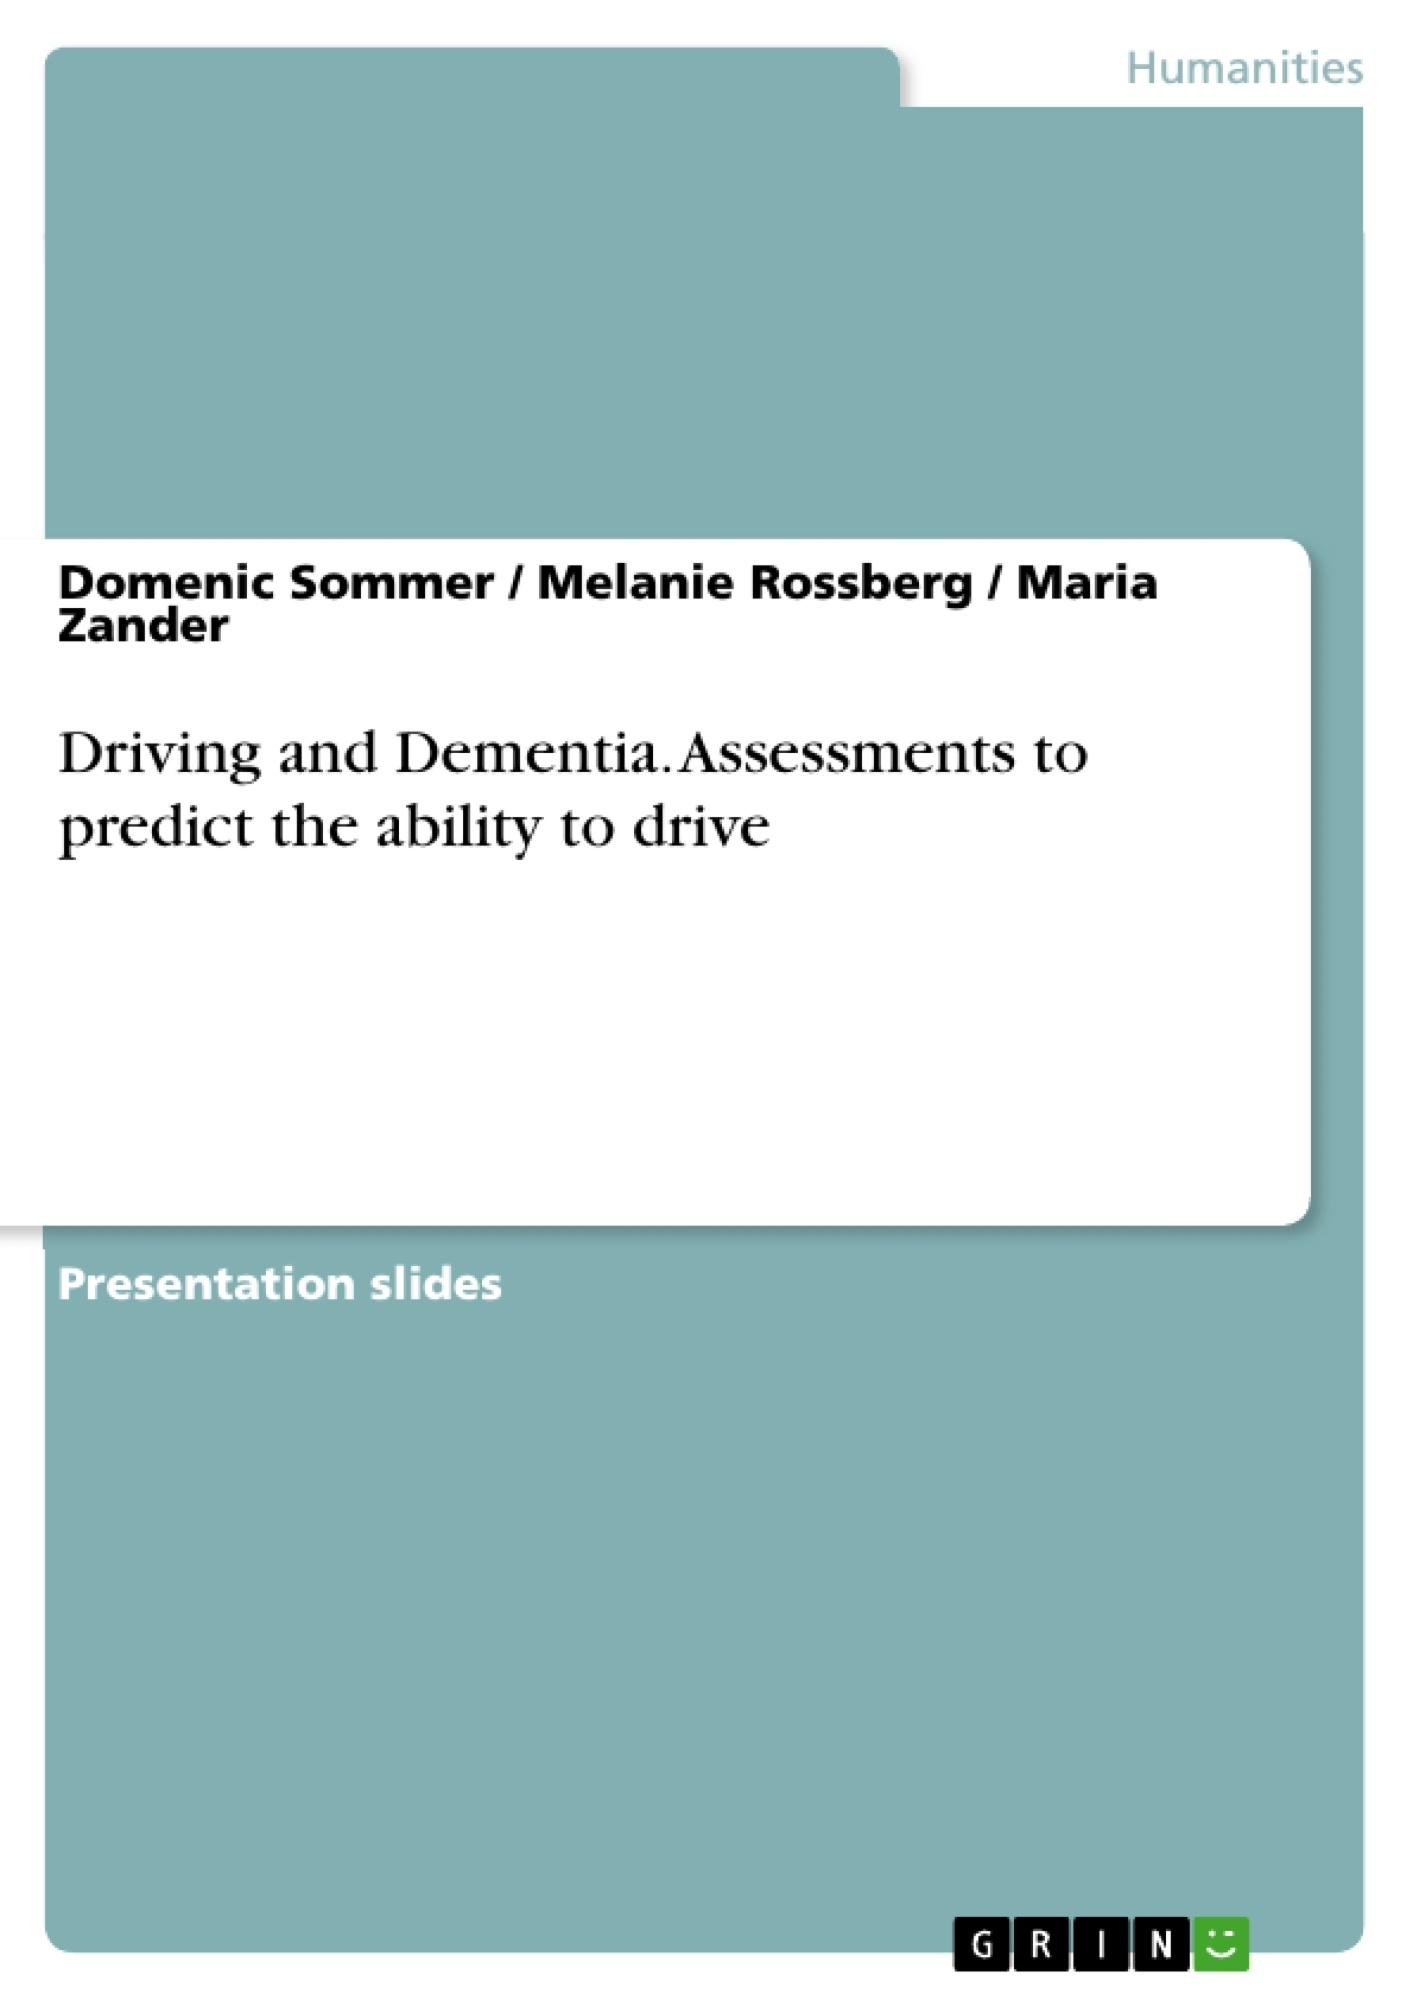 Title: Driving and Dementia. Assessments to predict the ability to drive